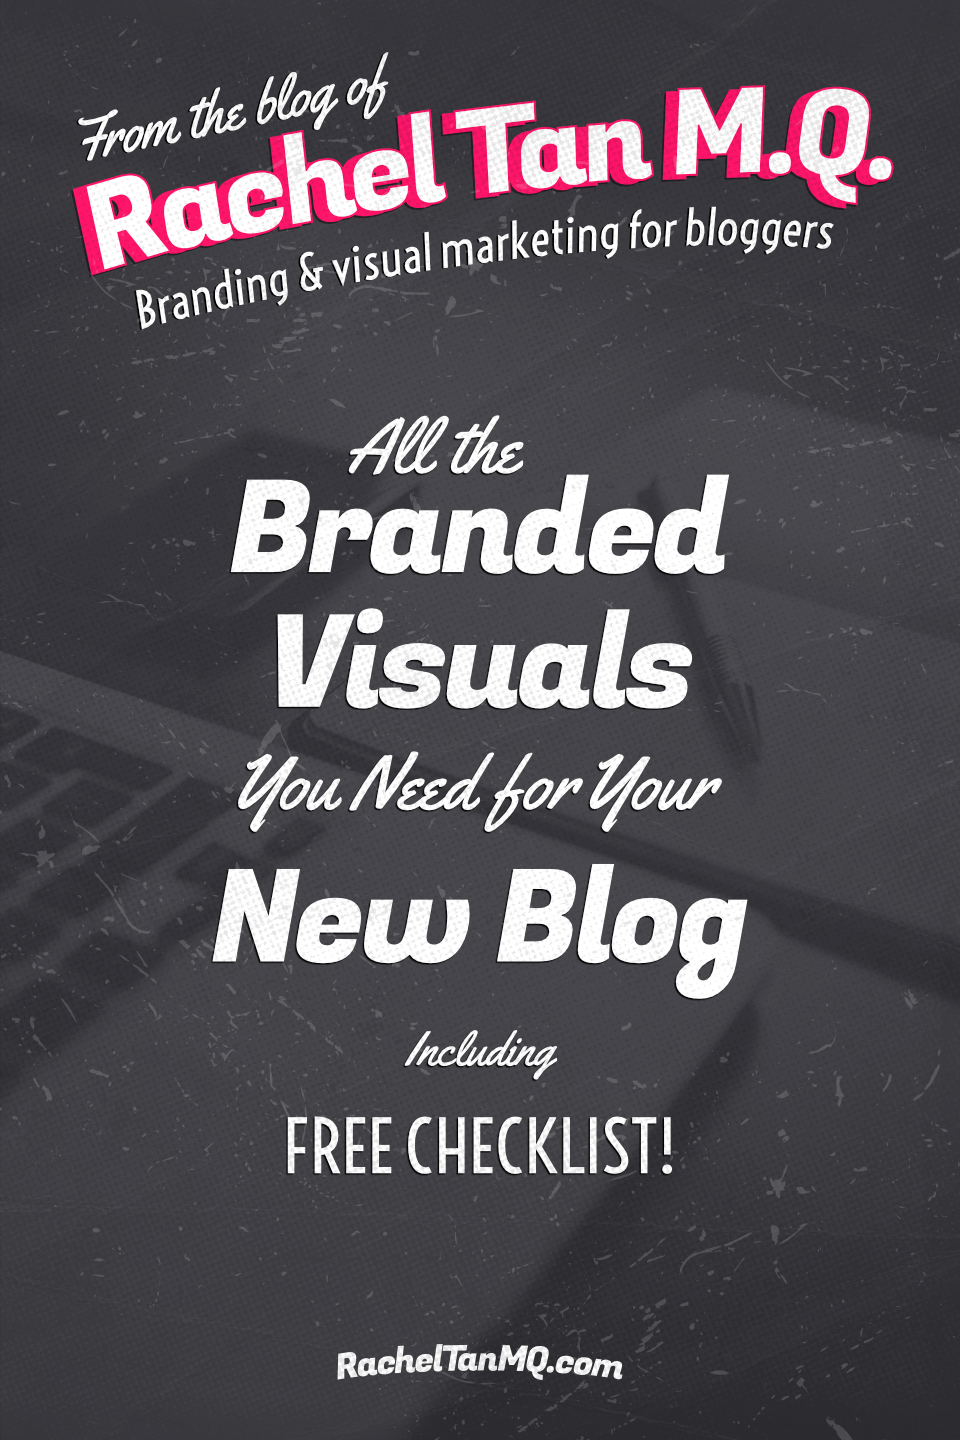 Start your blog on the right foot when it comes to visual branding with this FREE blog brand design checklist! #blogdesign #branddesign #blogbranding #visualbranding #bloggingtips #brandingtips #graphicdesigntips #bloggraphics #socialmediagraphics #visualmarketing